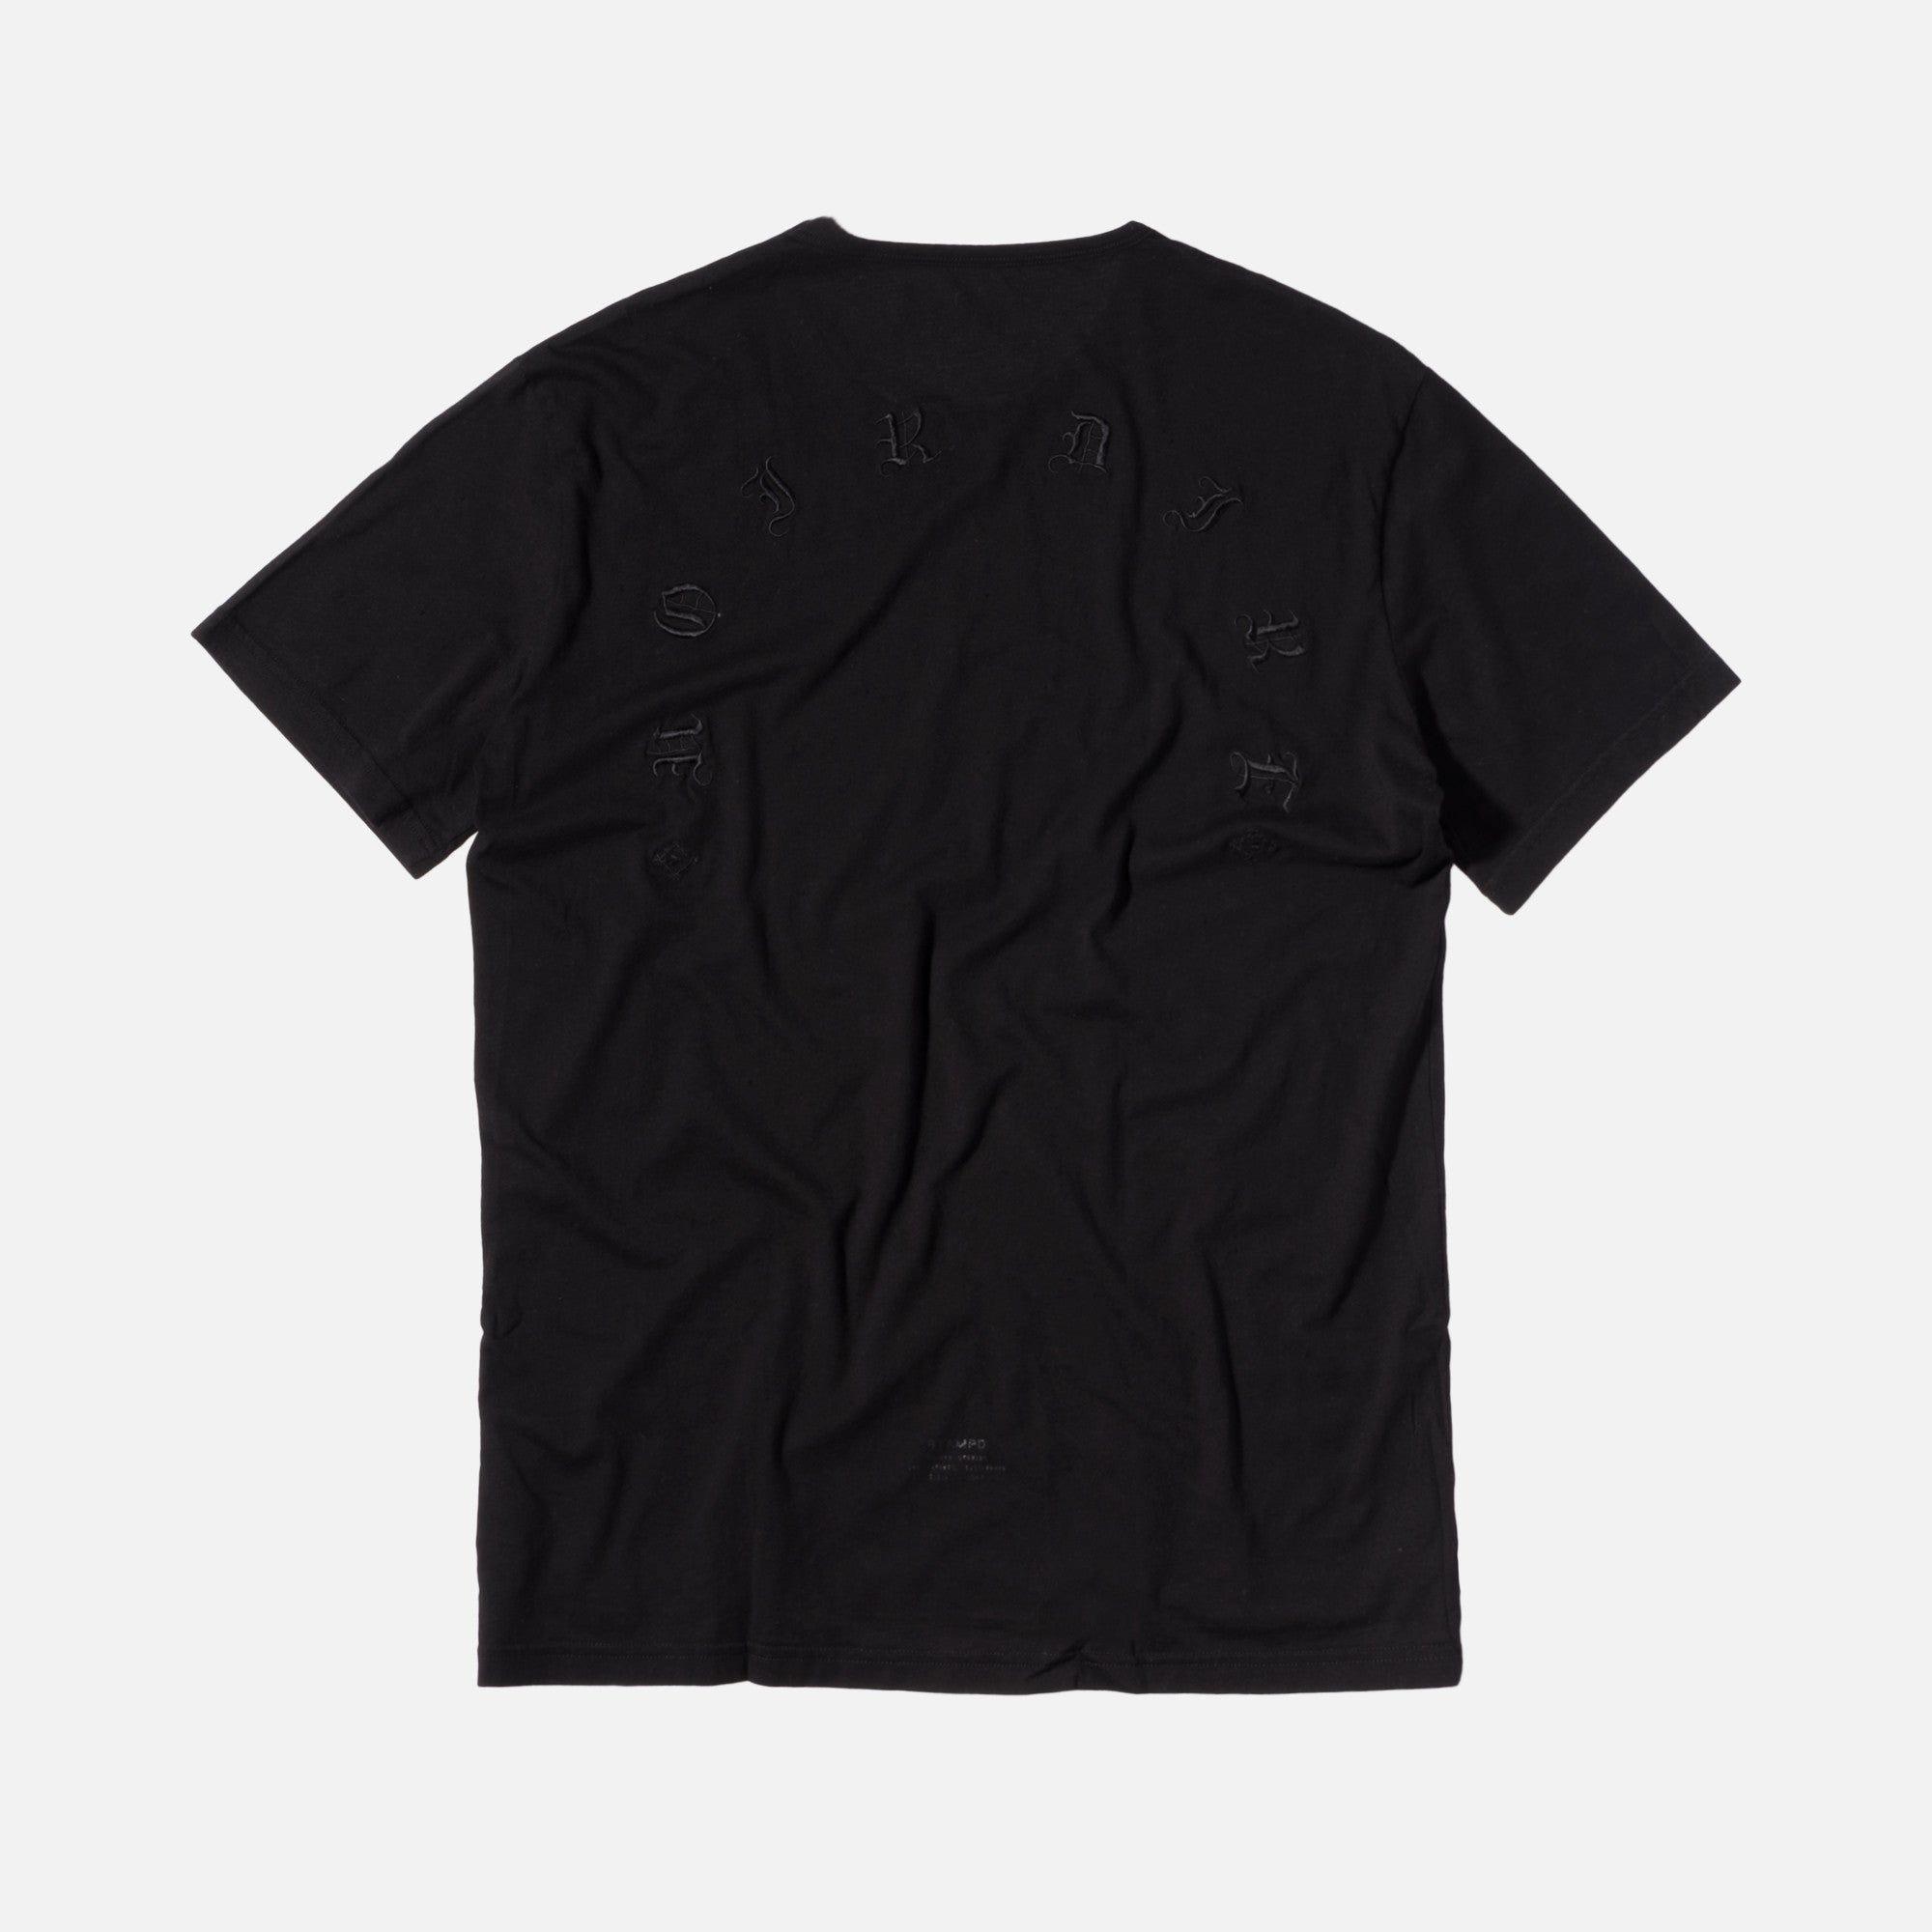 Stampd Distressed Voir Tee - Black